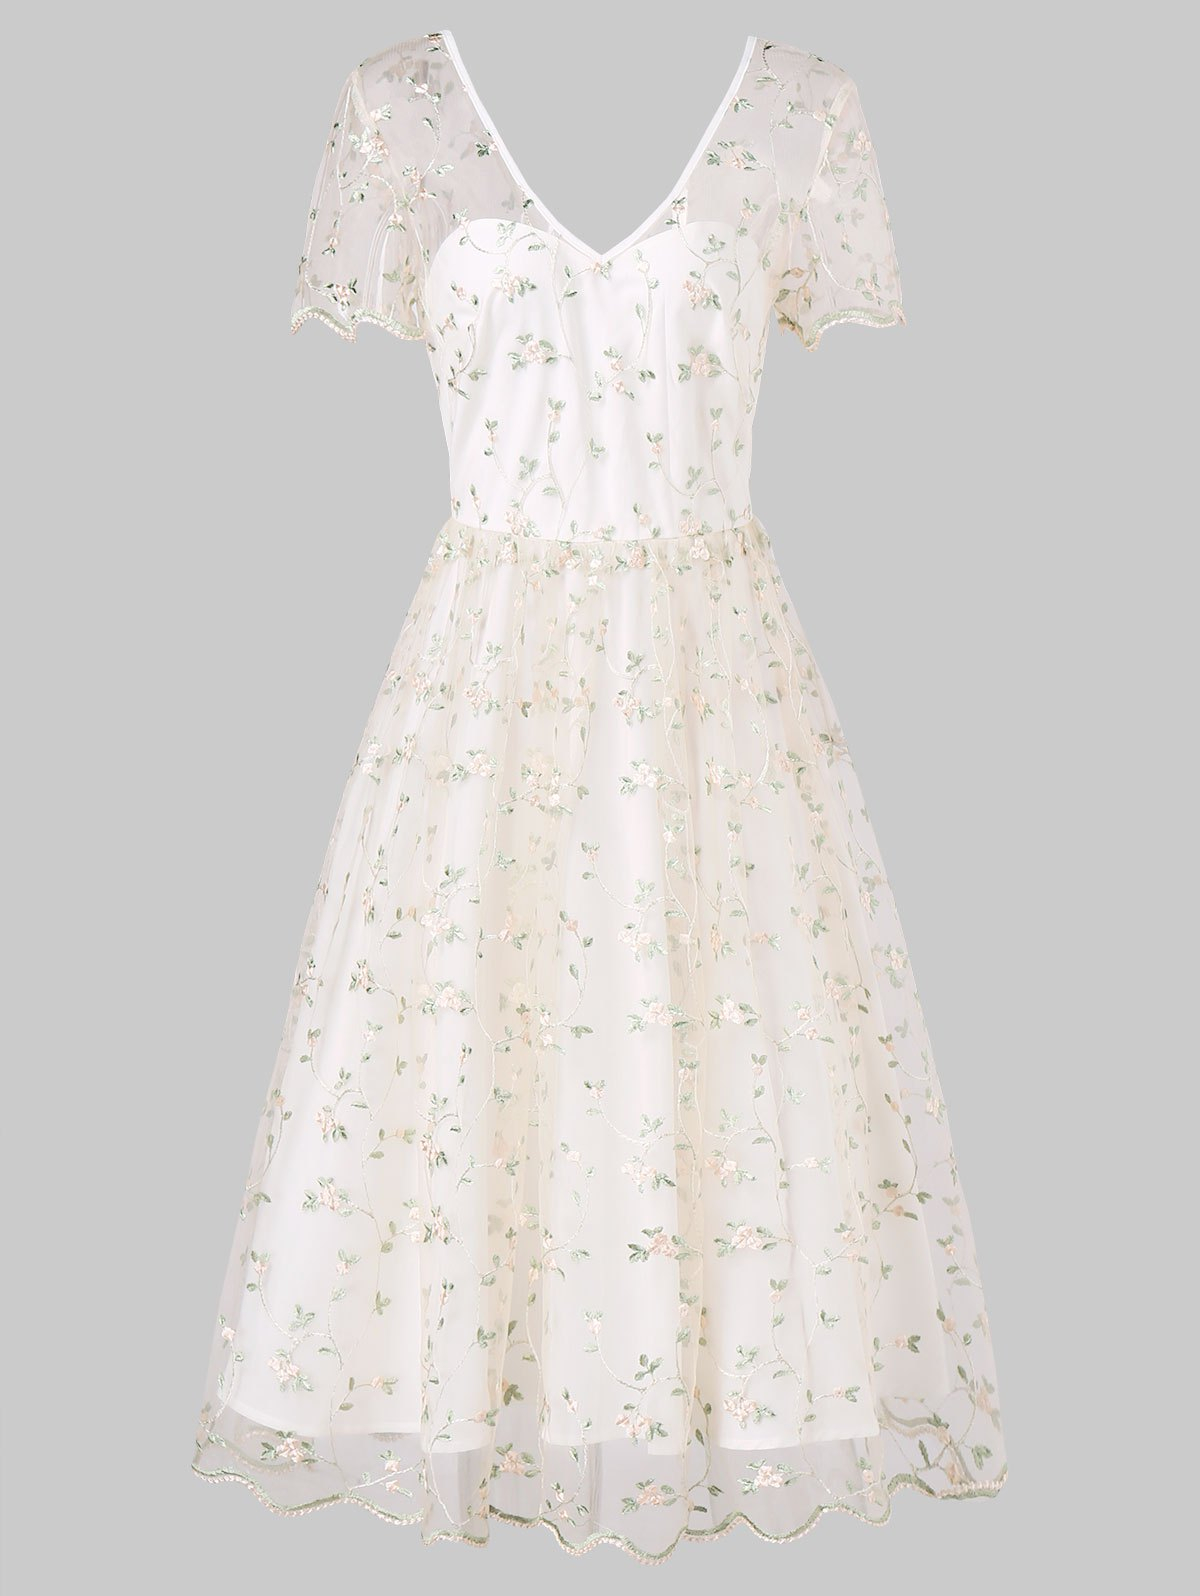 Wedding Dress Embroidery Patterns Tiny Floral Embroidery Wedding Bride Dress